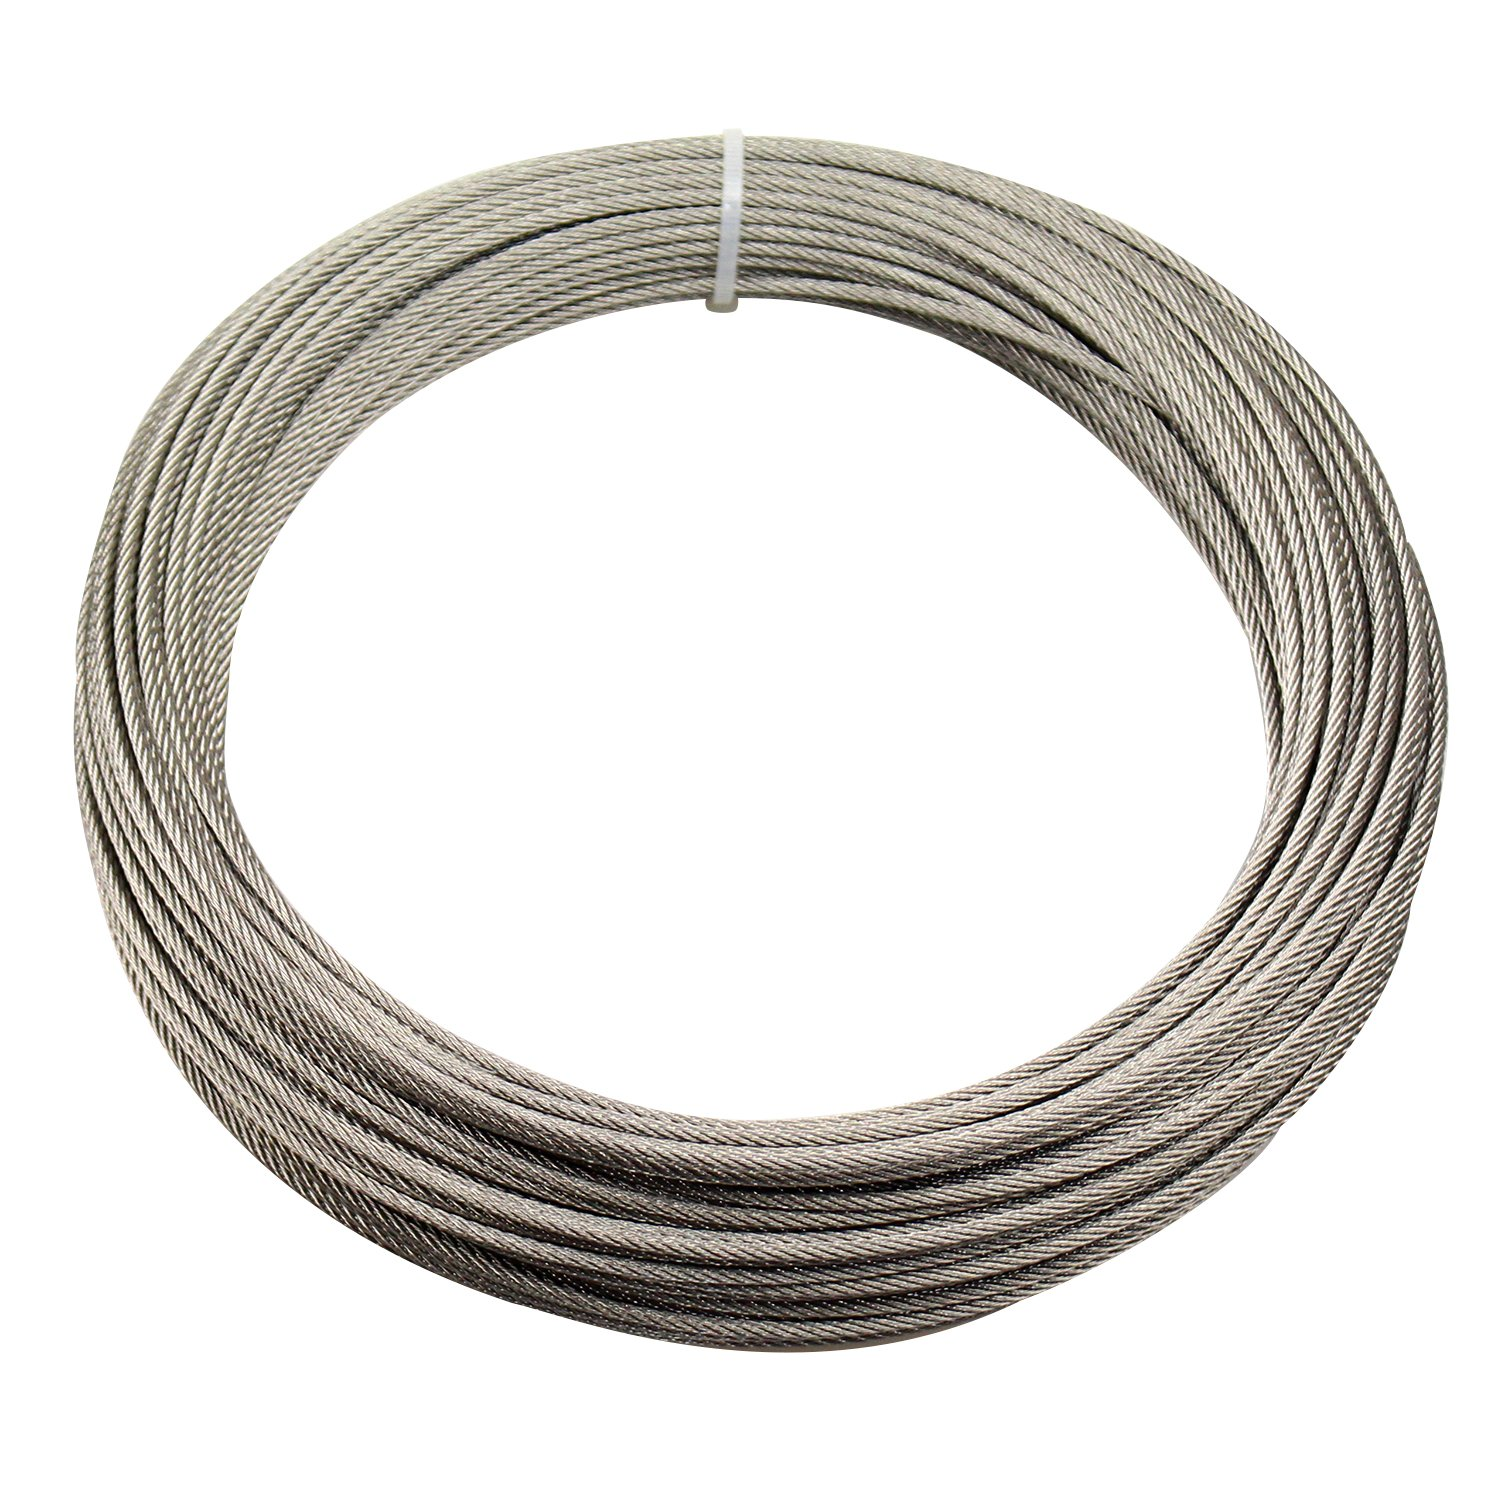 DYWISHKEY Stainless Steel Aircraft Cable 1/8'', 7x7, 164ft